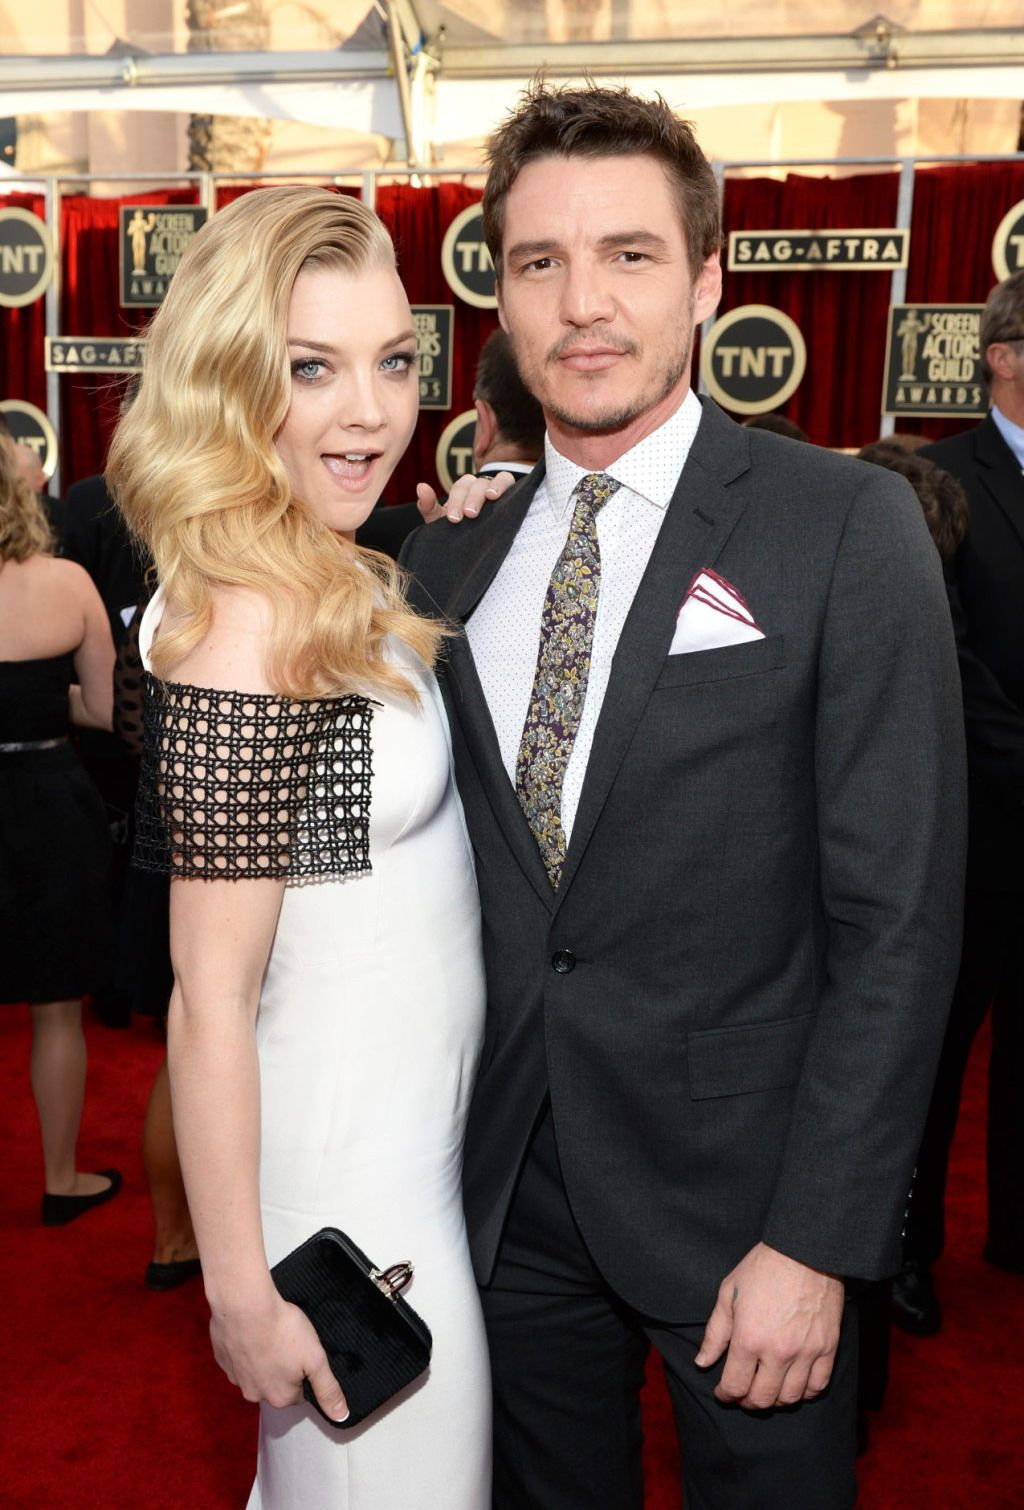 Now these two seem like a fun duo! Margaery and Oberyn